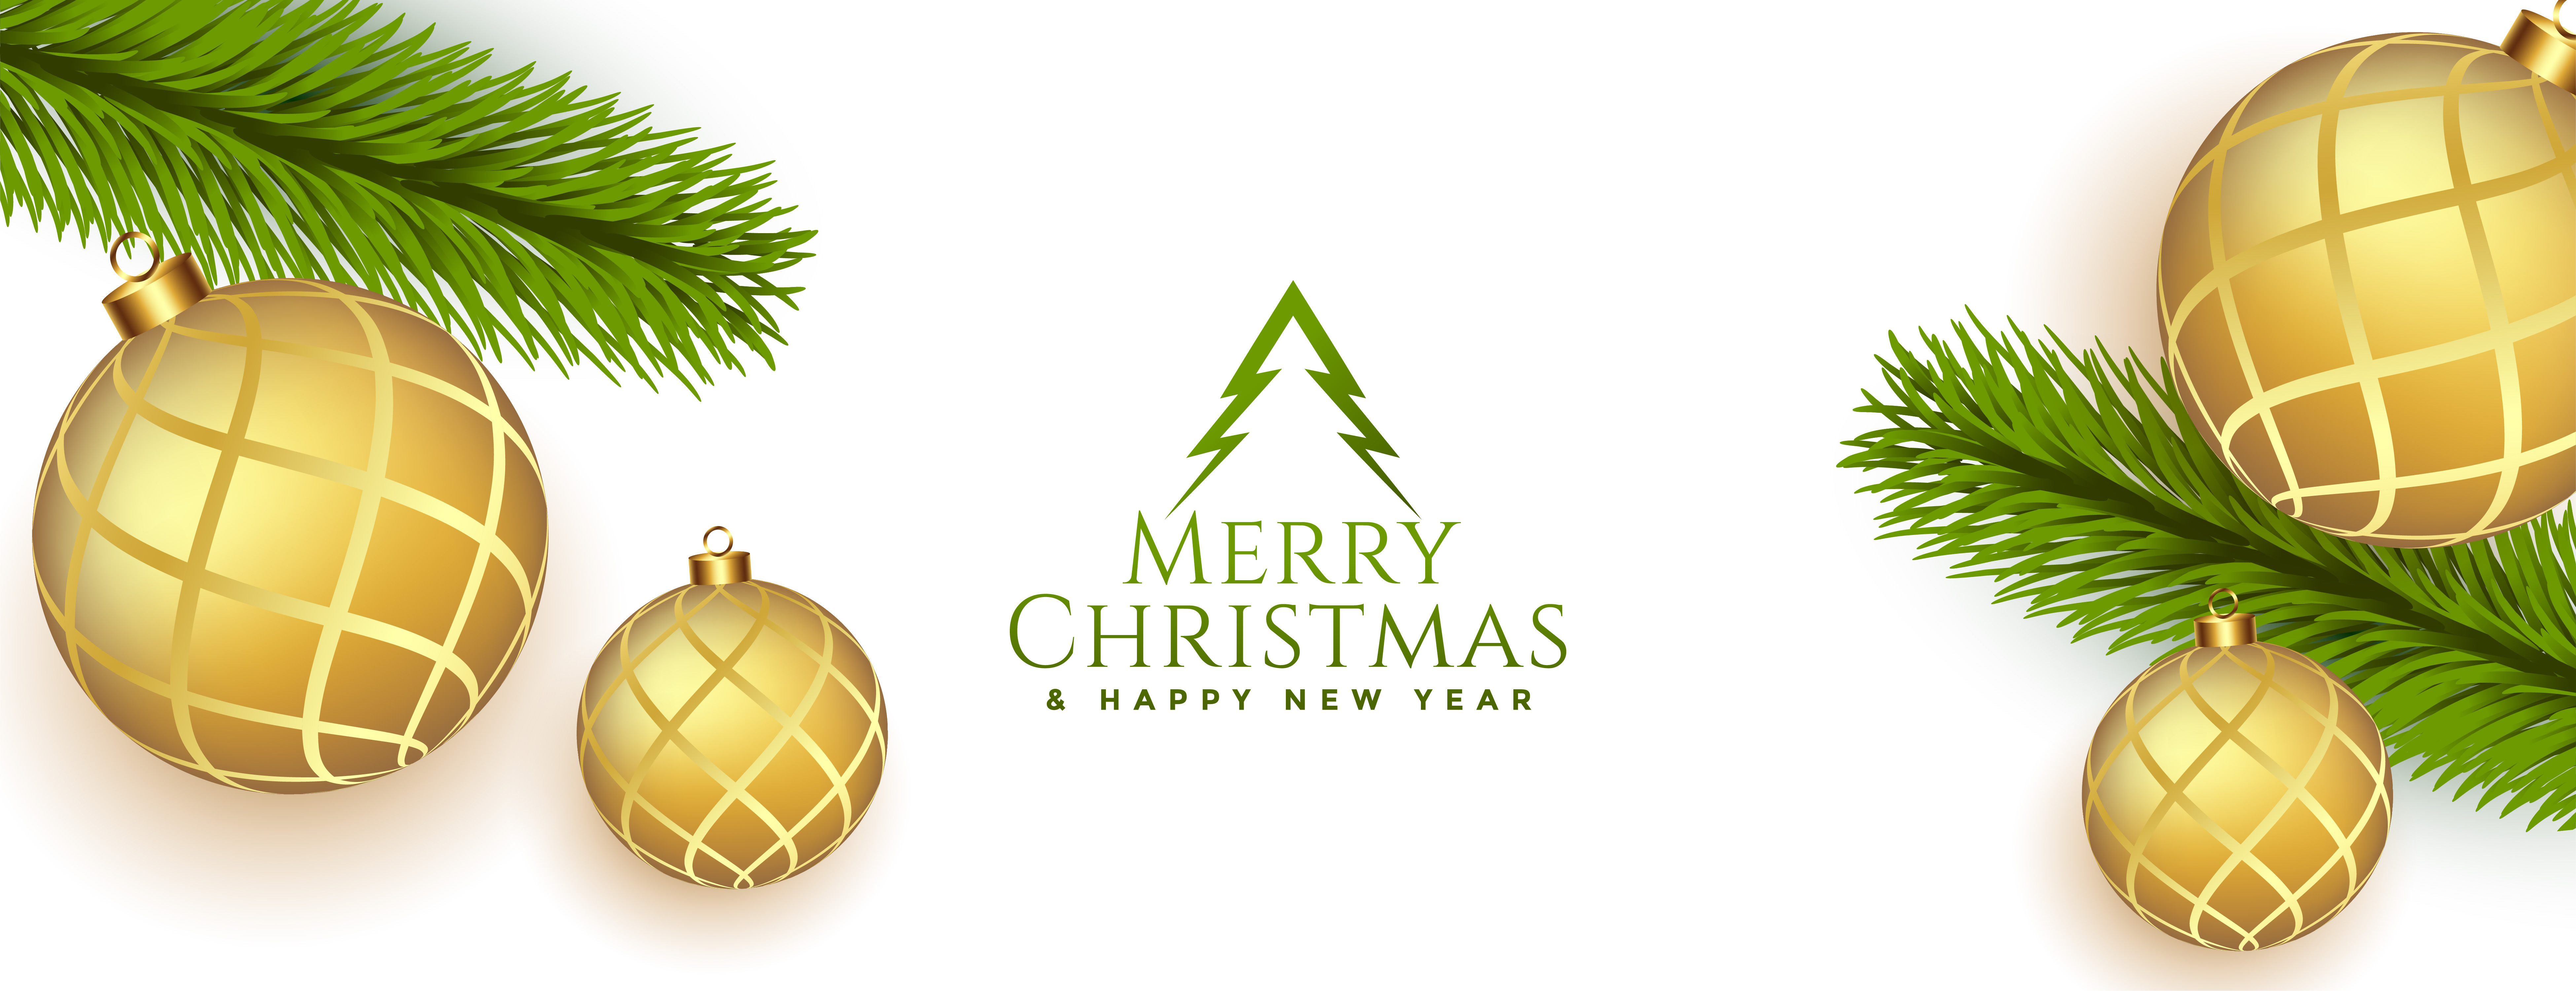 elegant merry christmas realistic banner with golden baubles